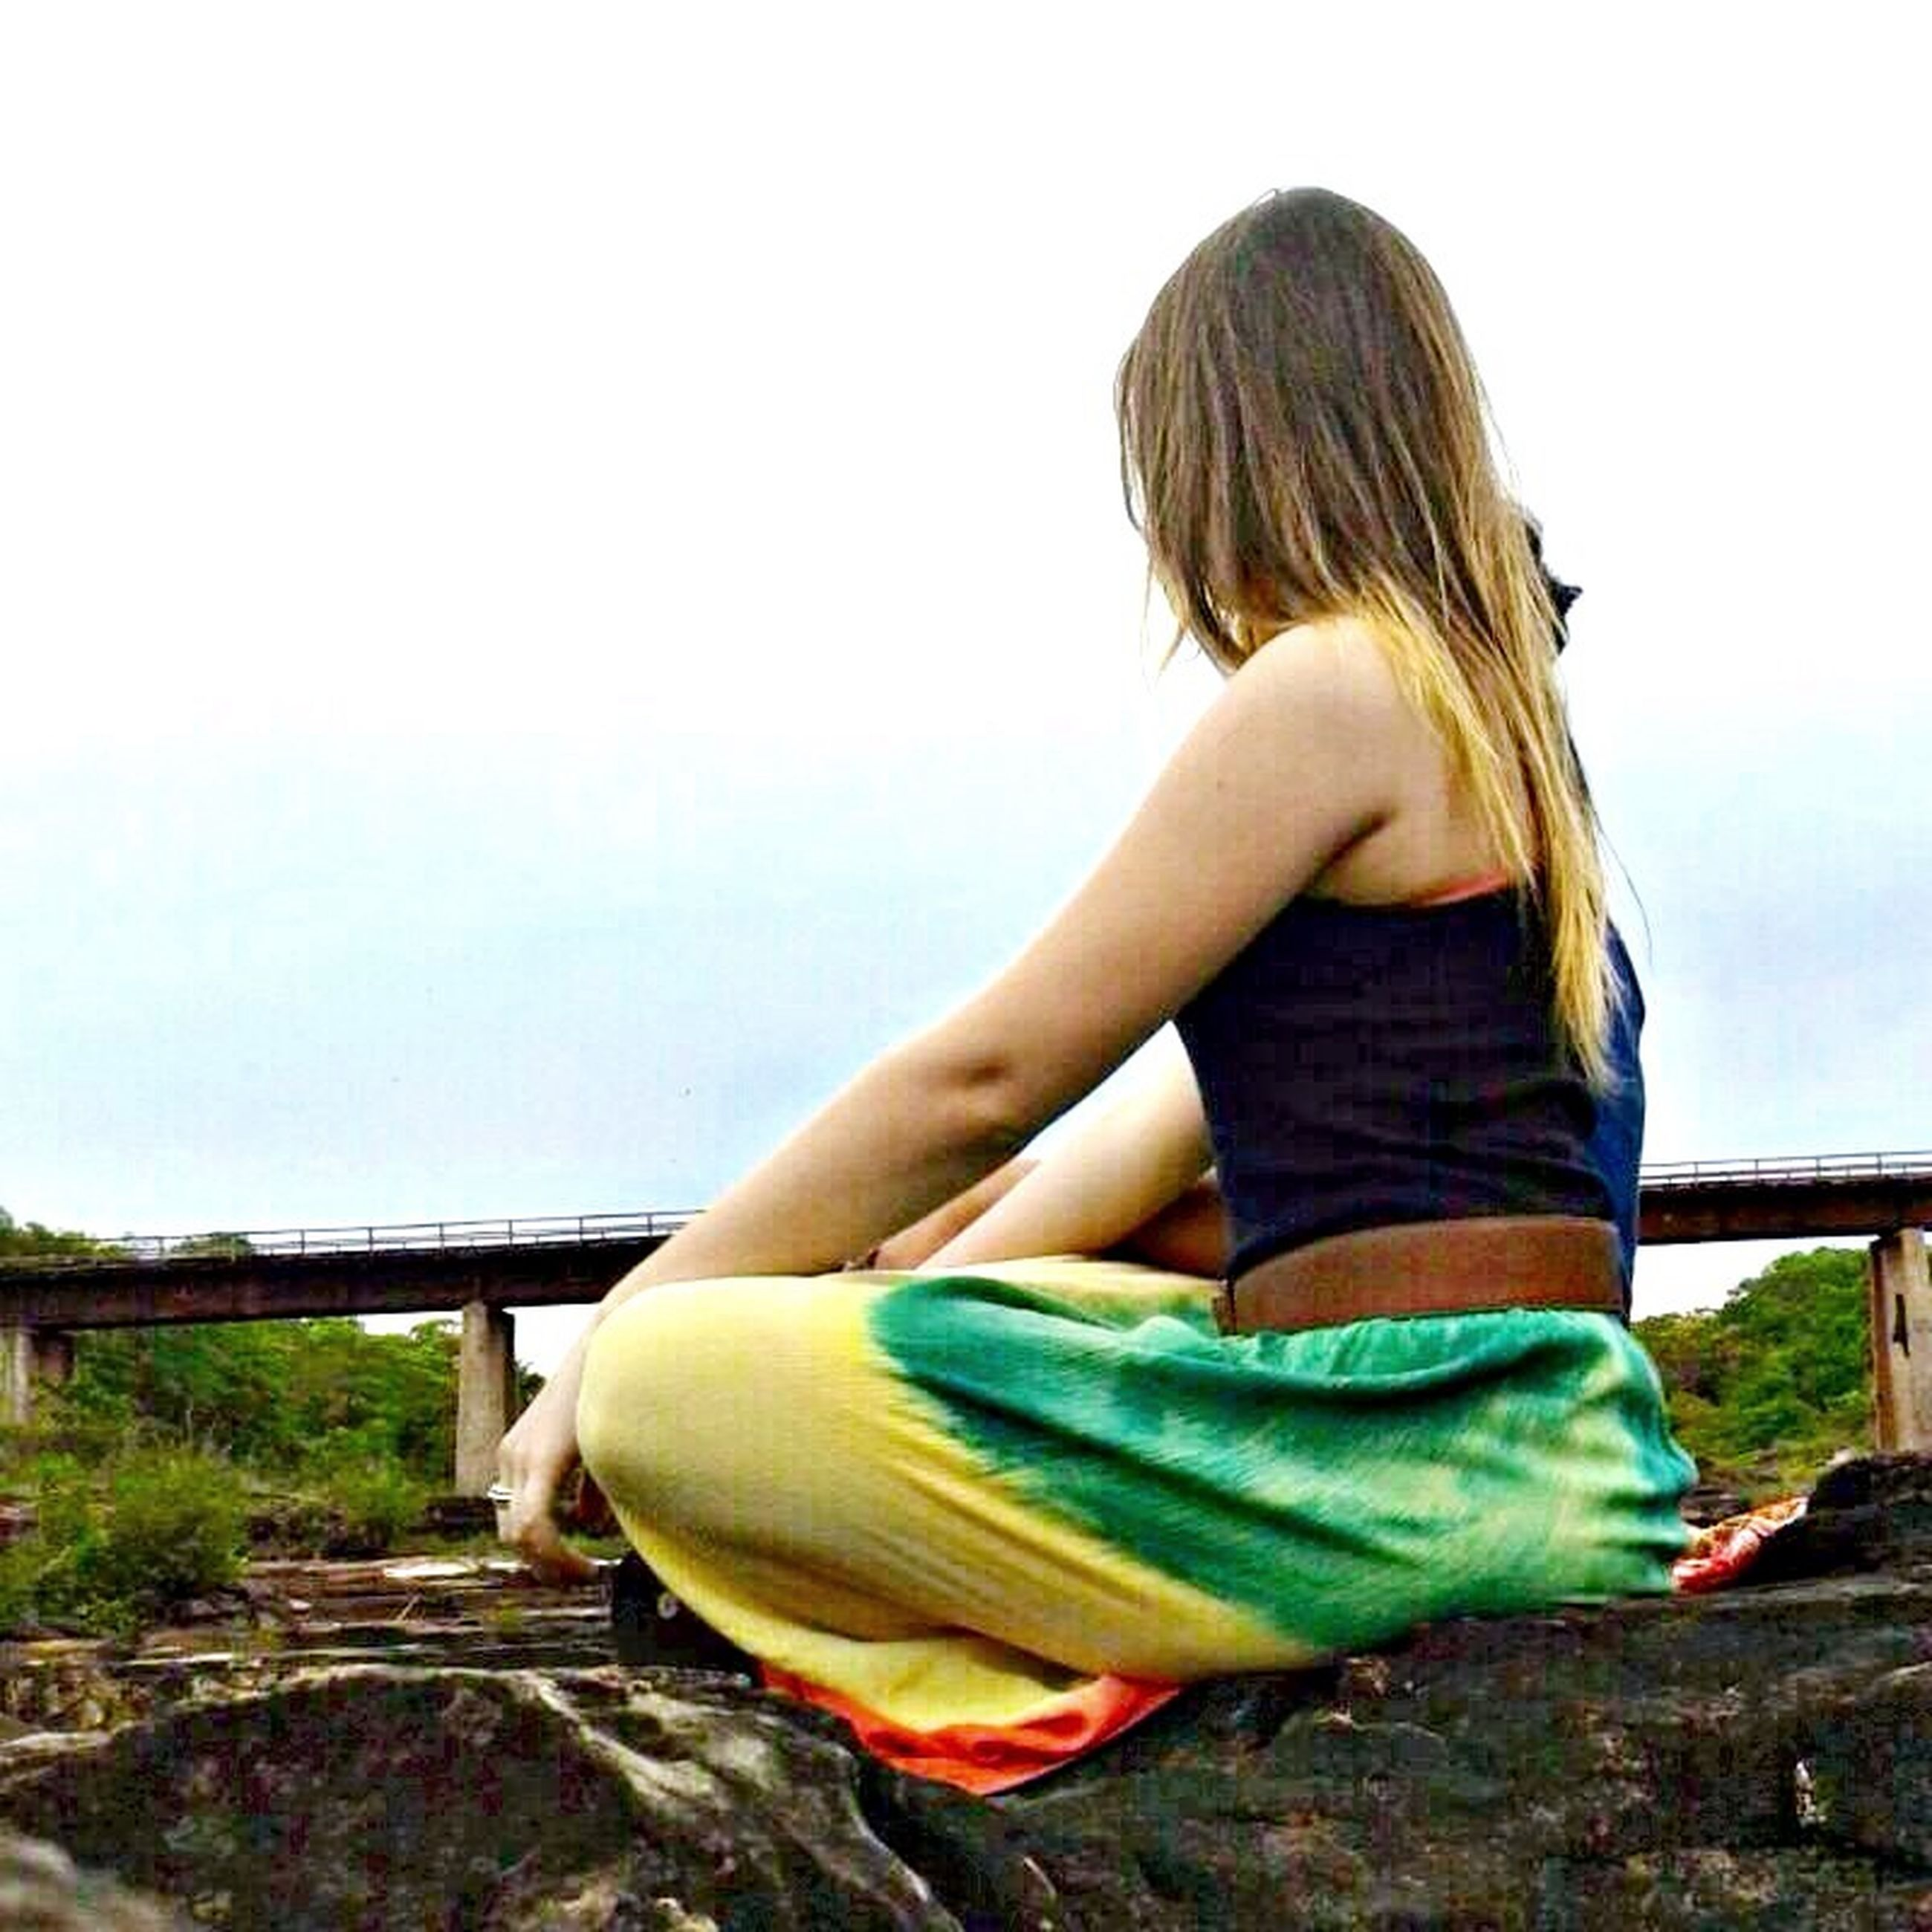 lifestyles, leisure activity, casual clothing, young adult, long hair, young women, full length, person, rear view, sitting, side view, waist up, relaxation, clear sky, blond hair, sky, three quarter length